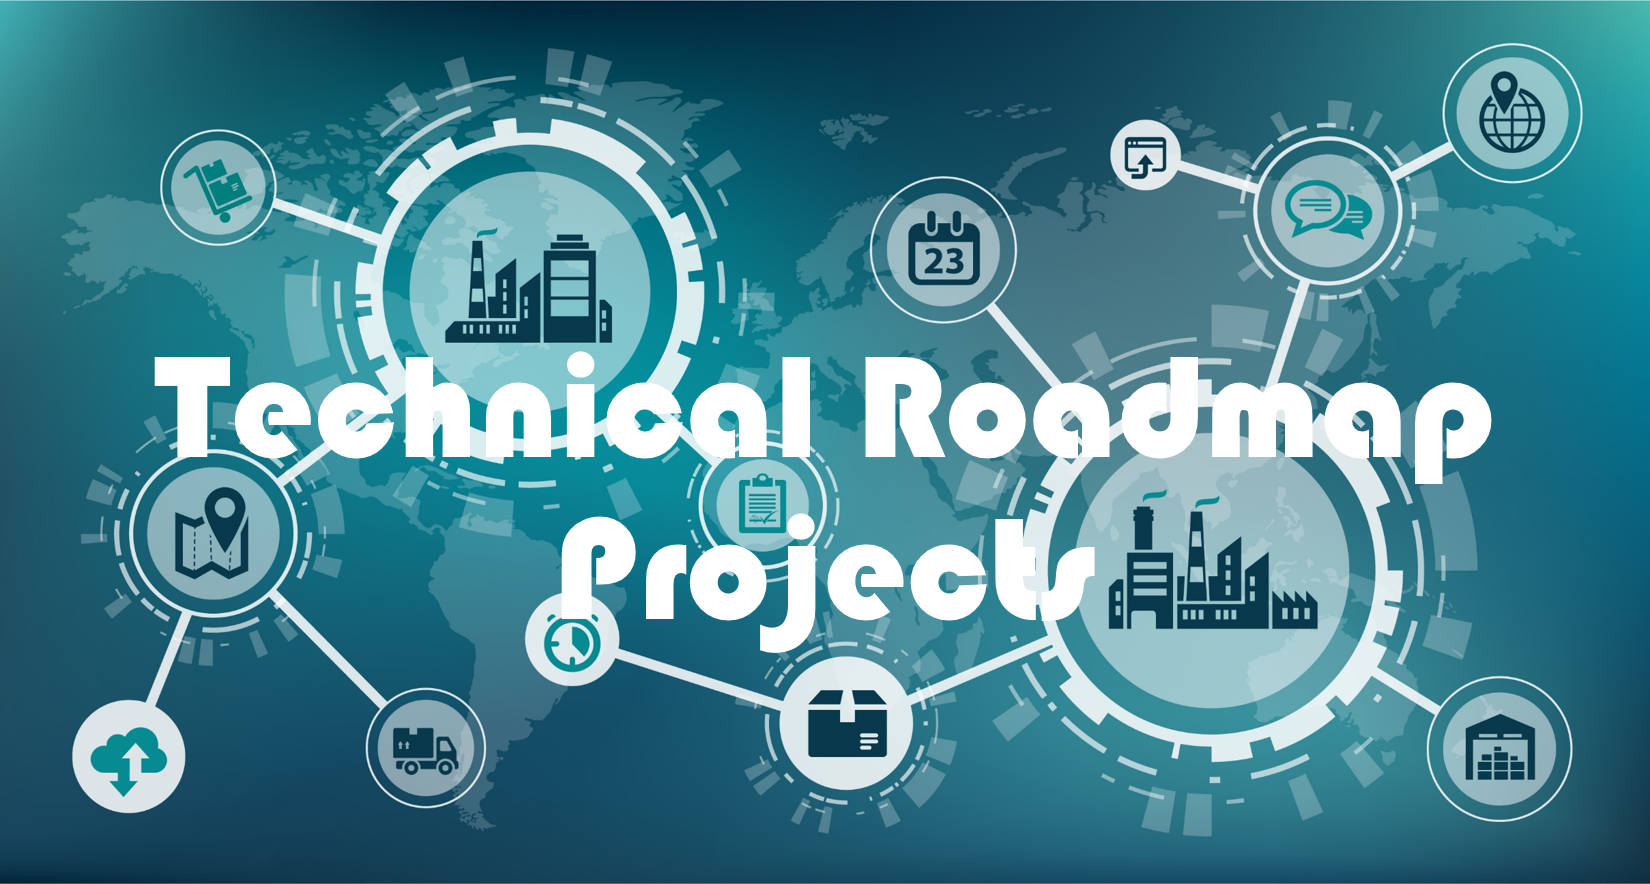 Technical Roadmap Projects